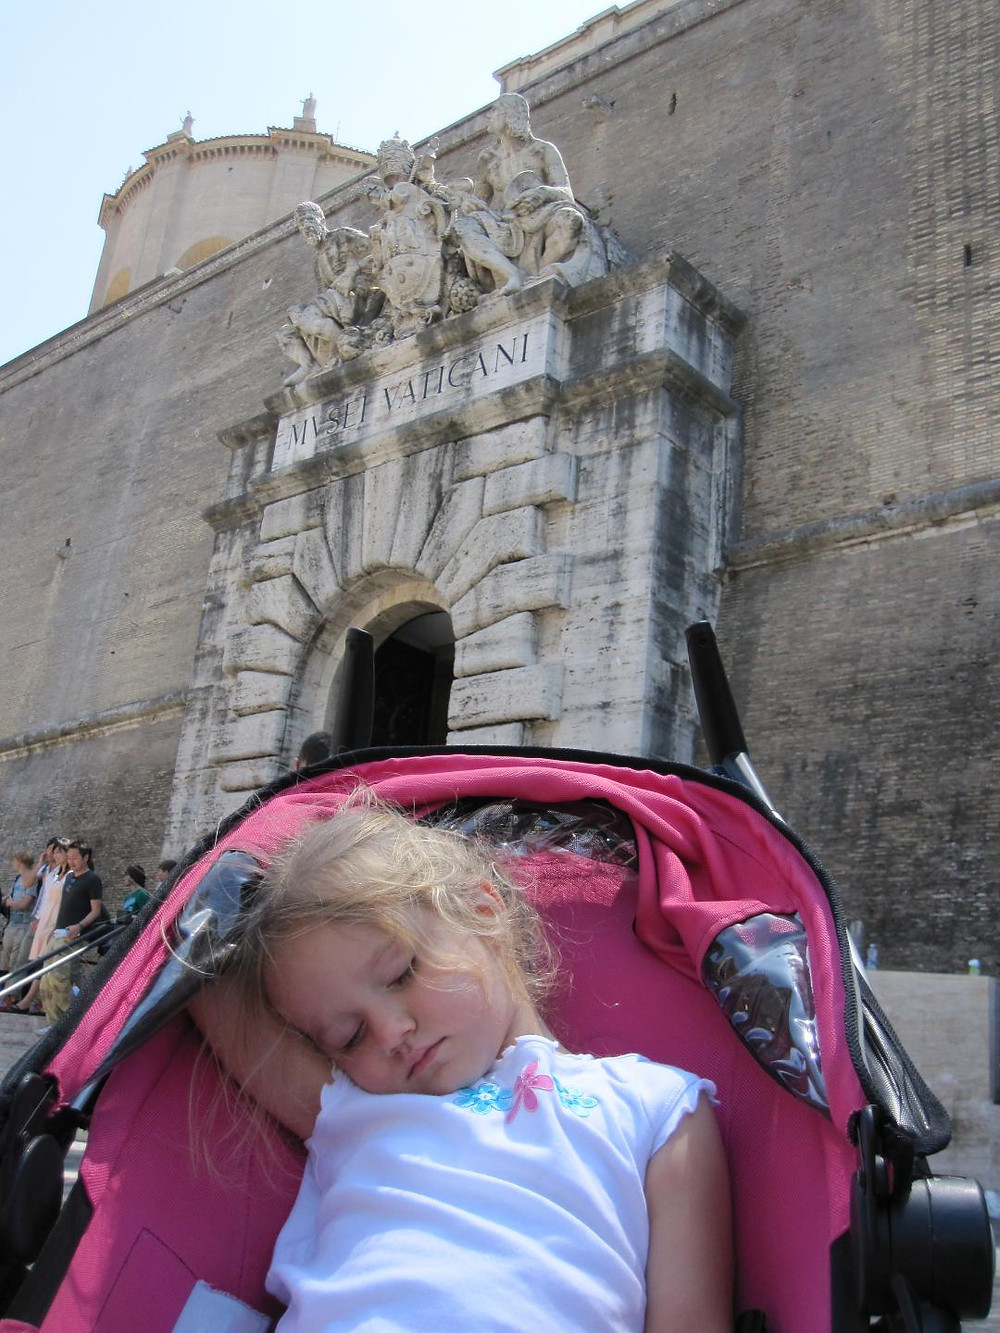 Toddler sleeping in stroller in Vatican City